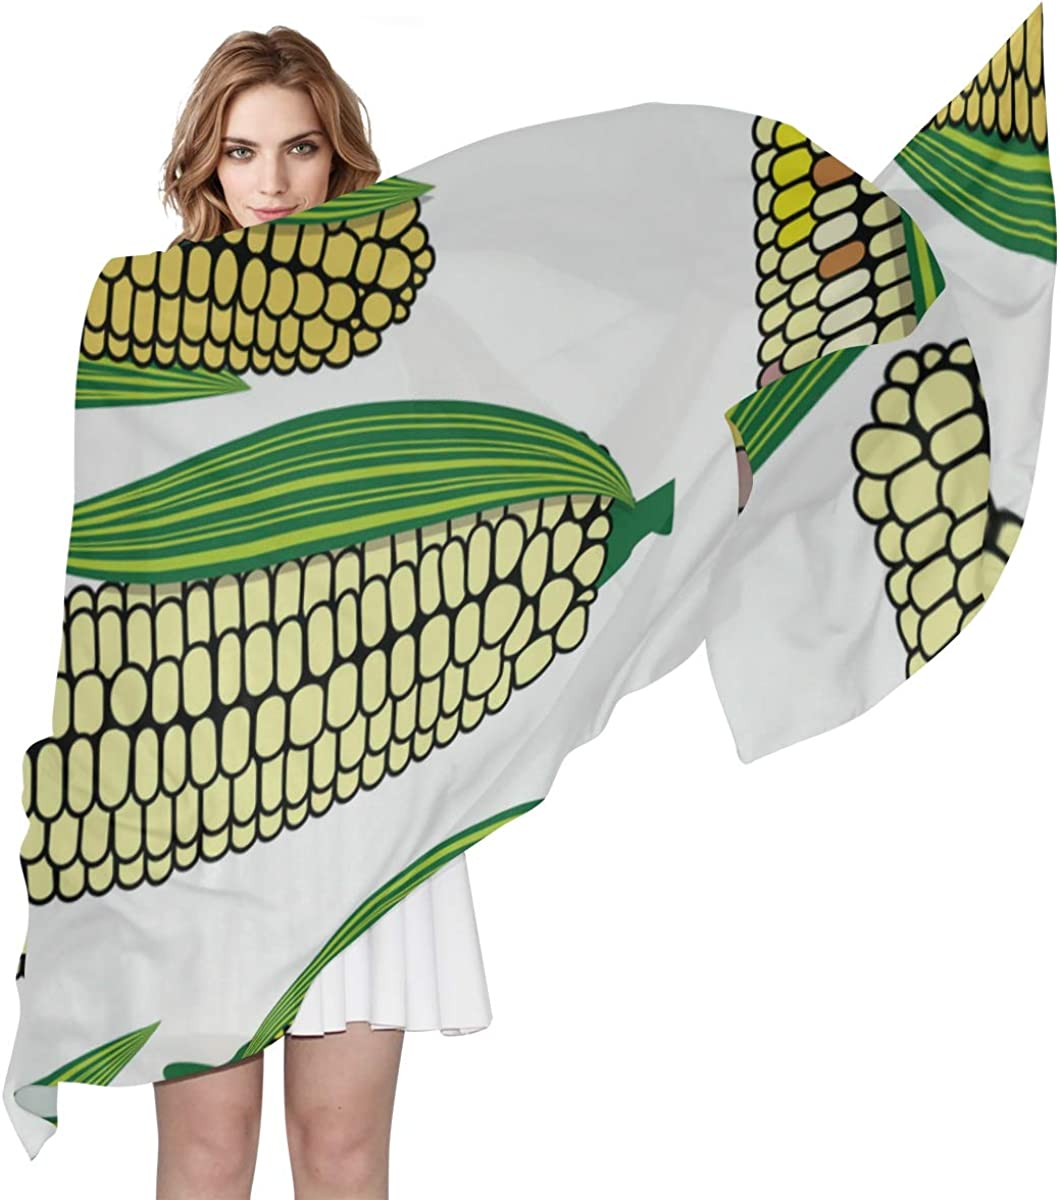 Harvest Of Mature Corn Unique Fashion Scarf For Women Lightweight Fashion Fall Winter Print Scarves Shawl Wraps Gifts For Early Spring